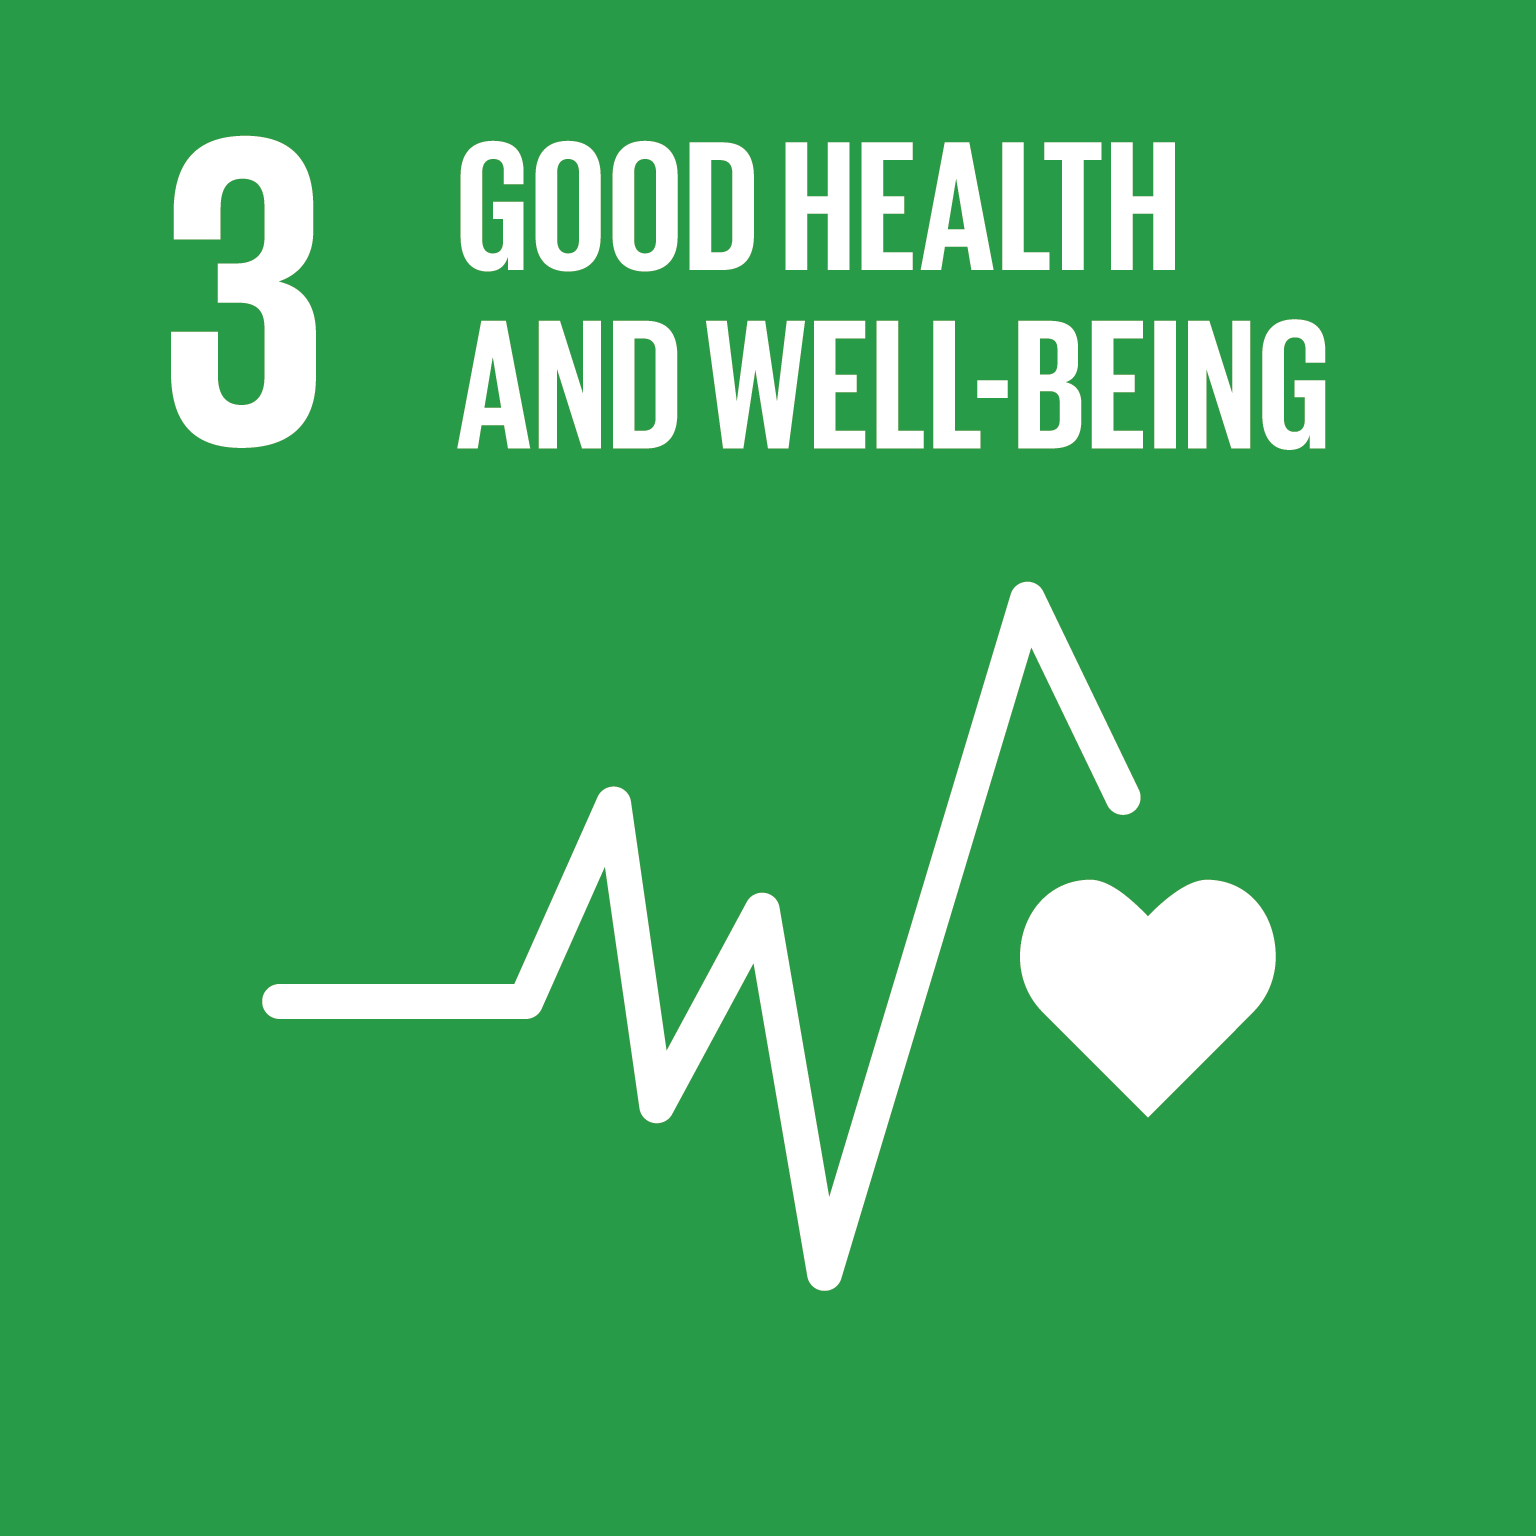 SDG 3 - Good health and well being